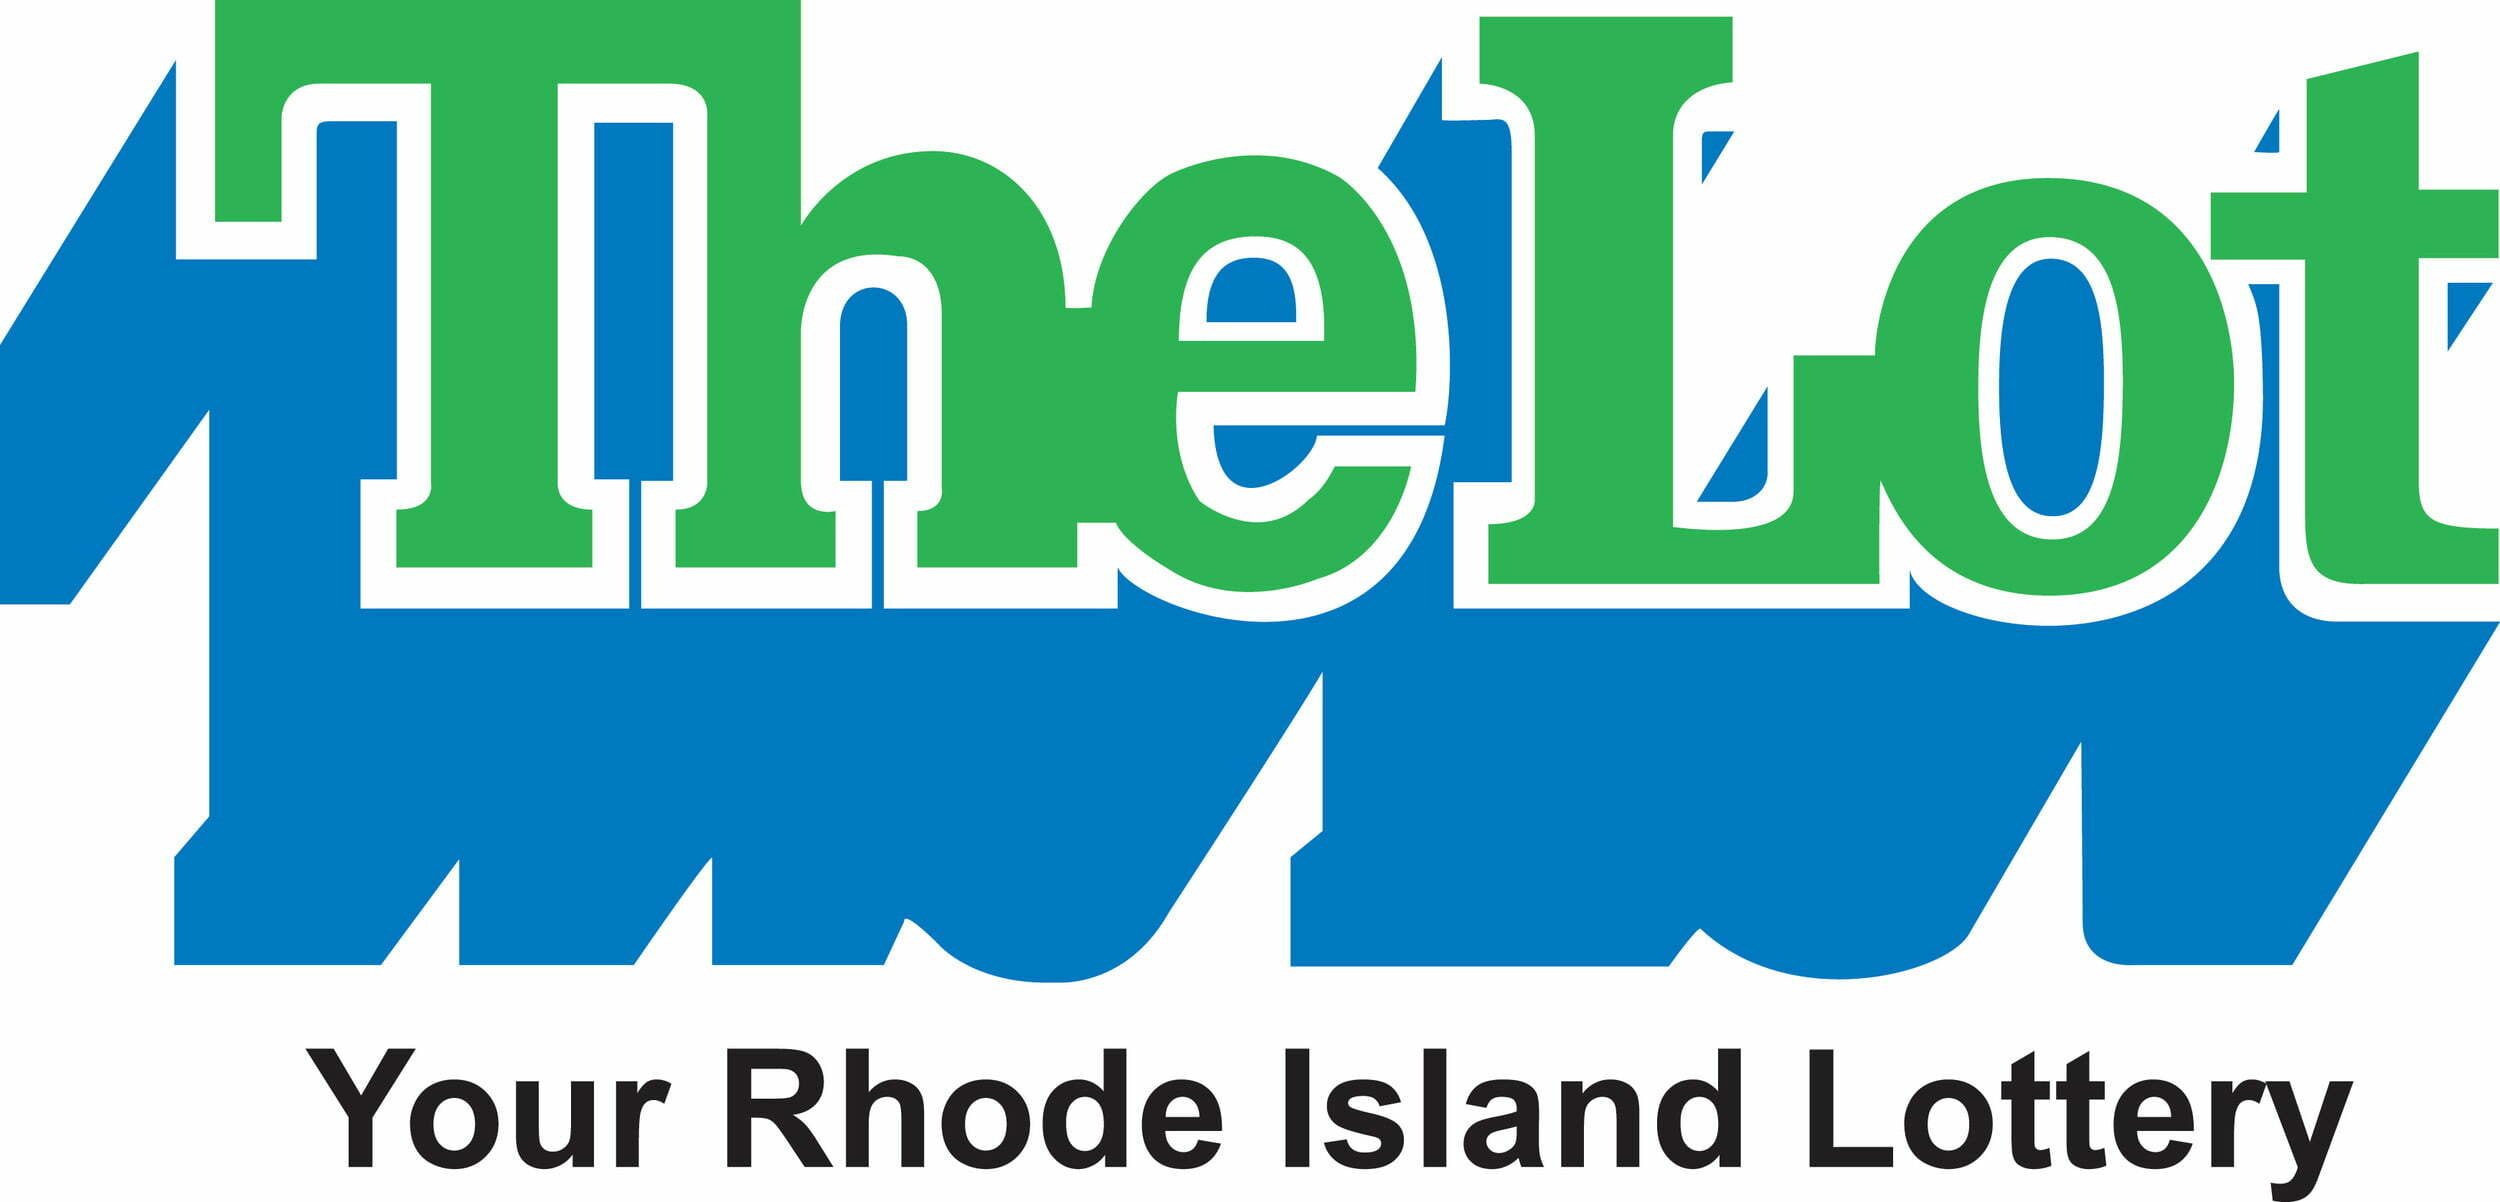 Twins Rivers And Scientific Games Combine To Execute Rhode Island Lottery Contract